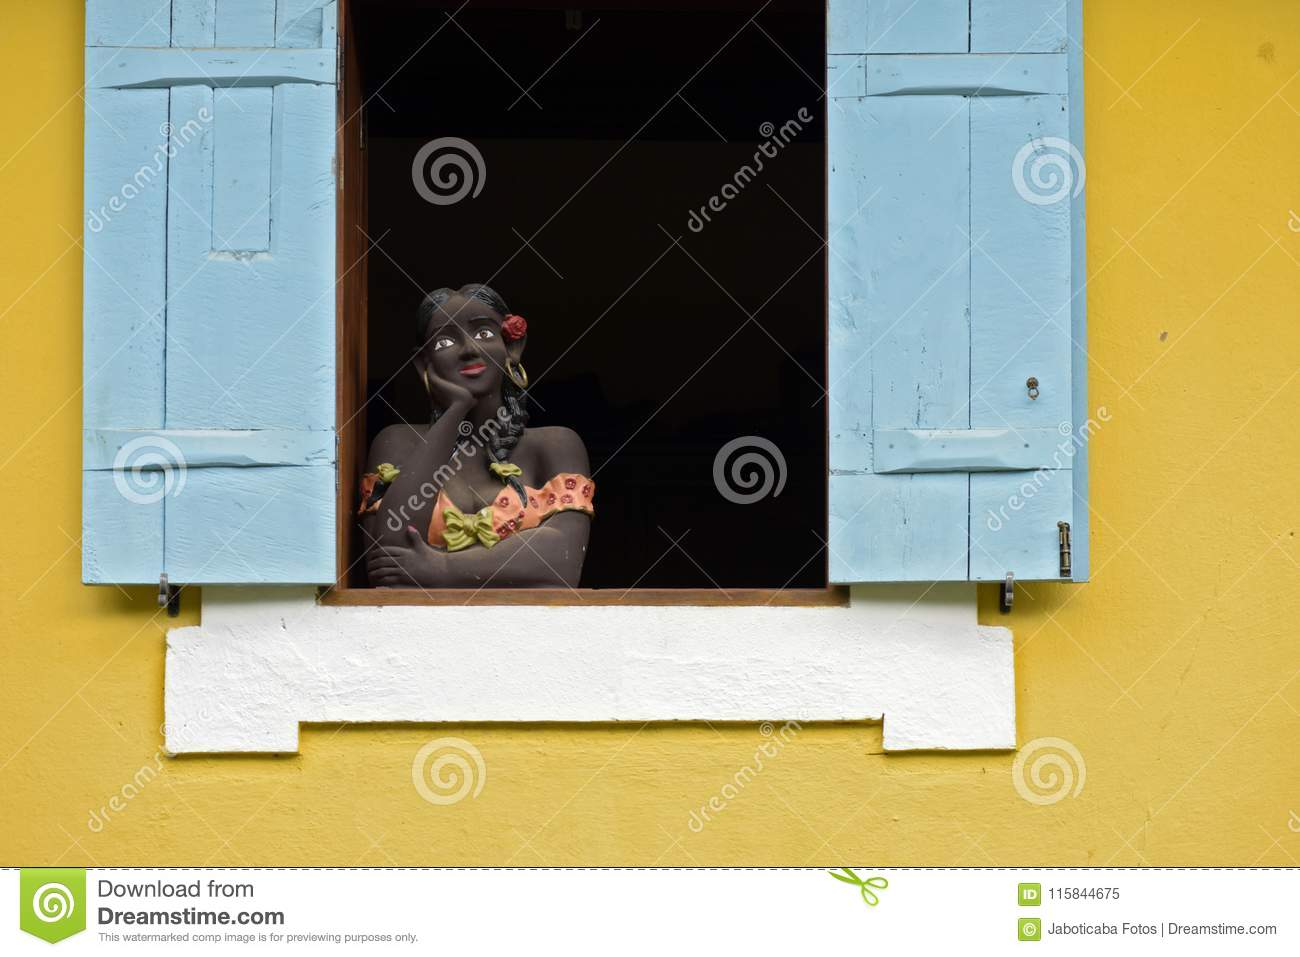 Sculpture of woman bust on blue window